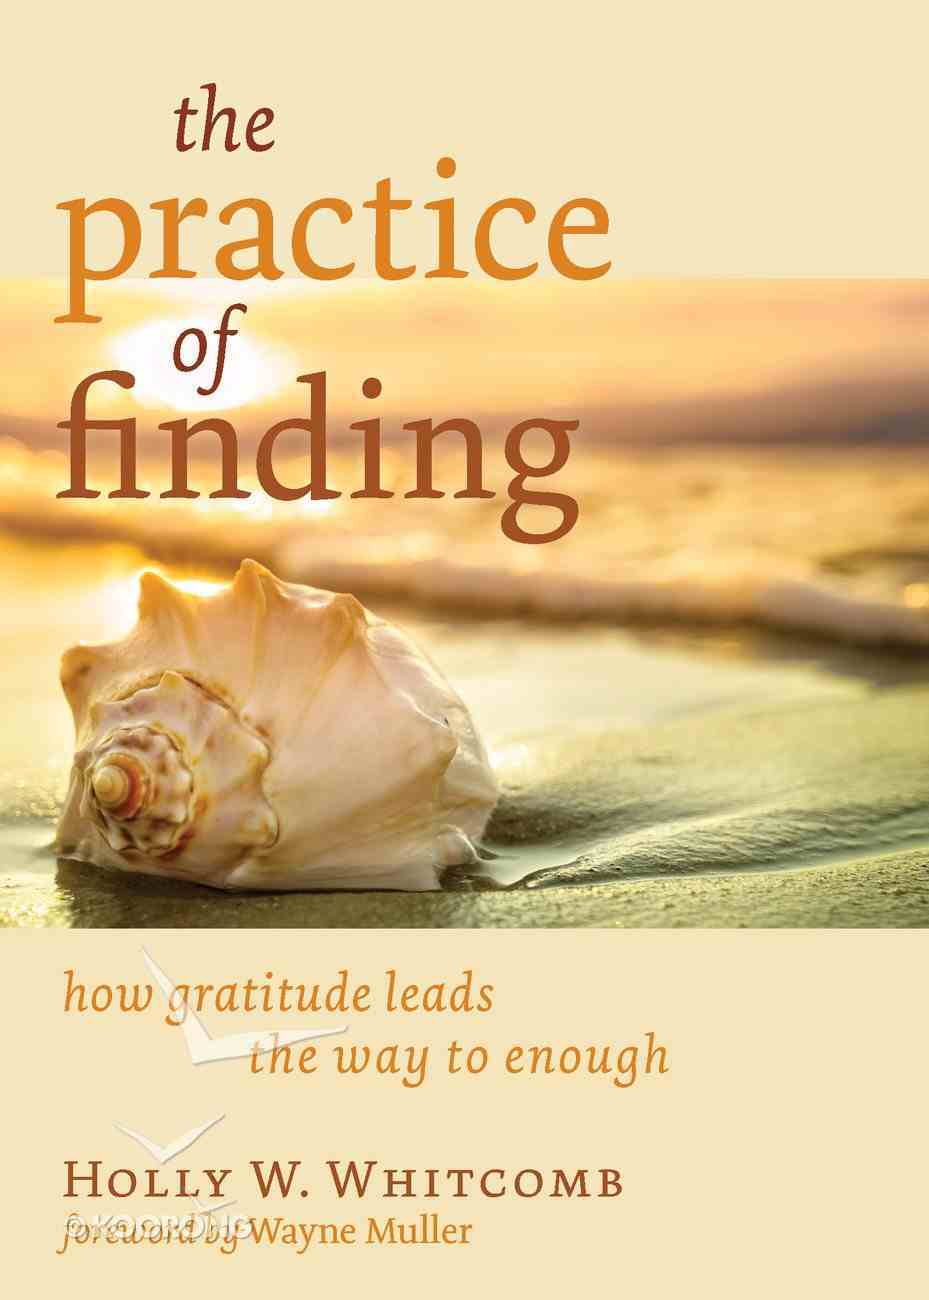 The Practice of Finding: How Gratitude Leads the Way to Enough Paperback